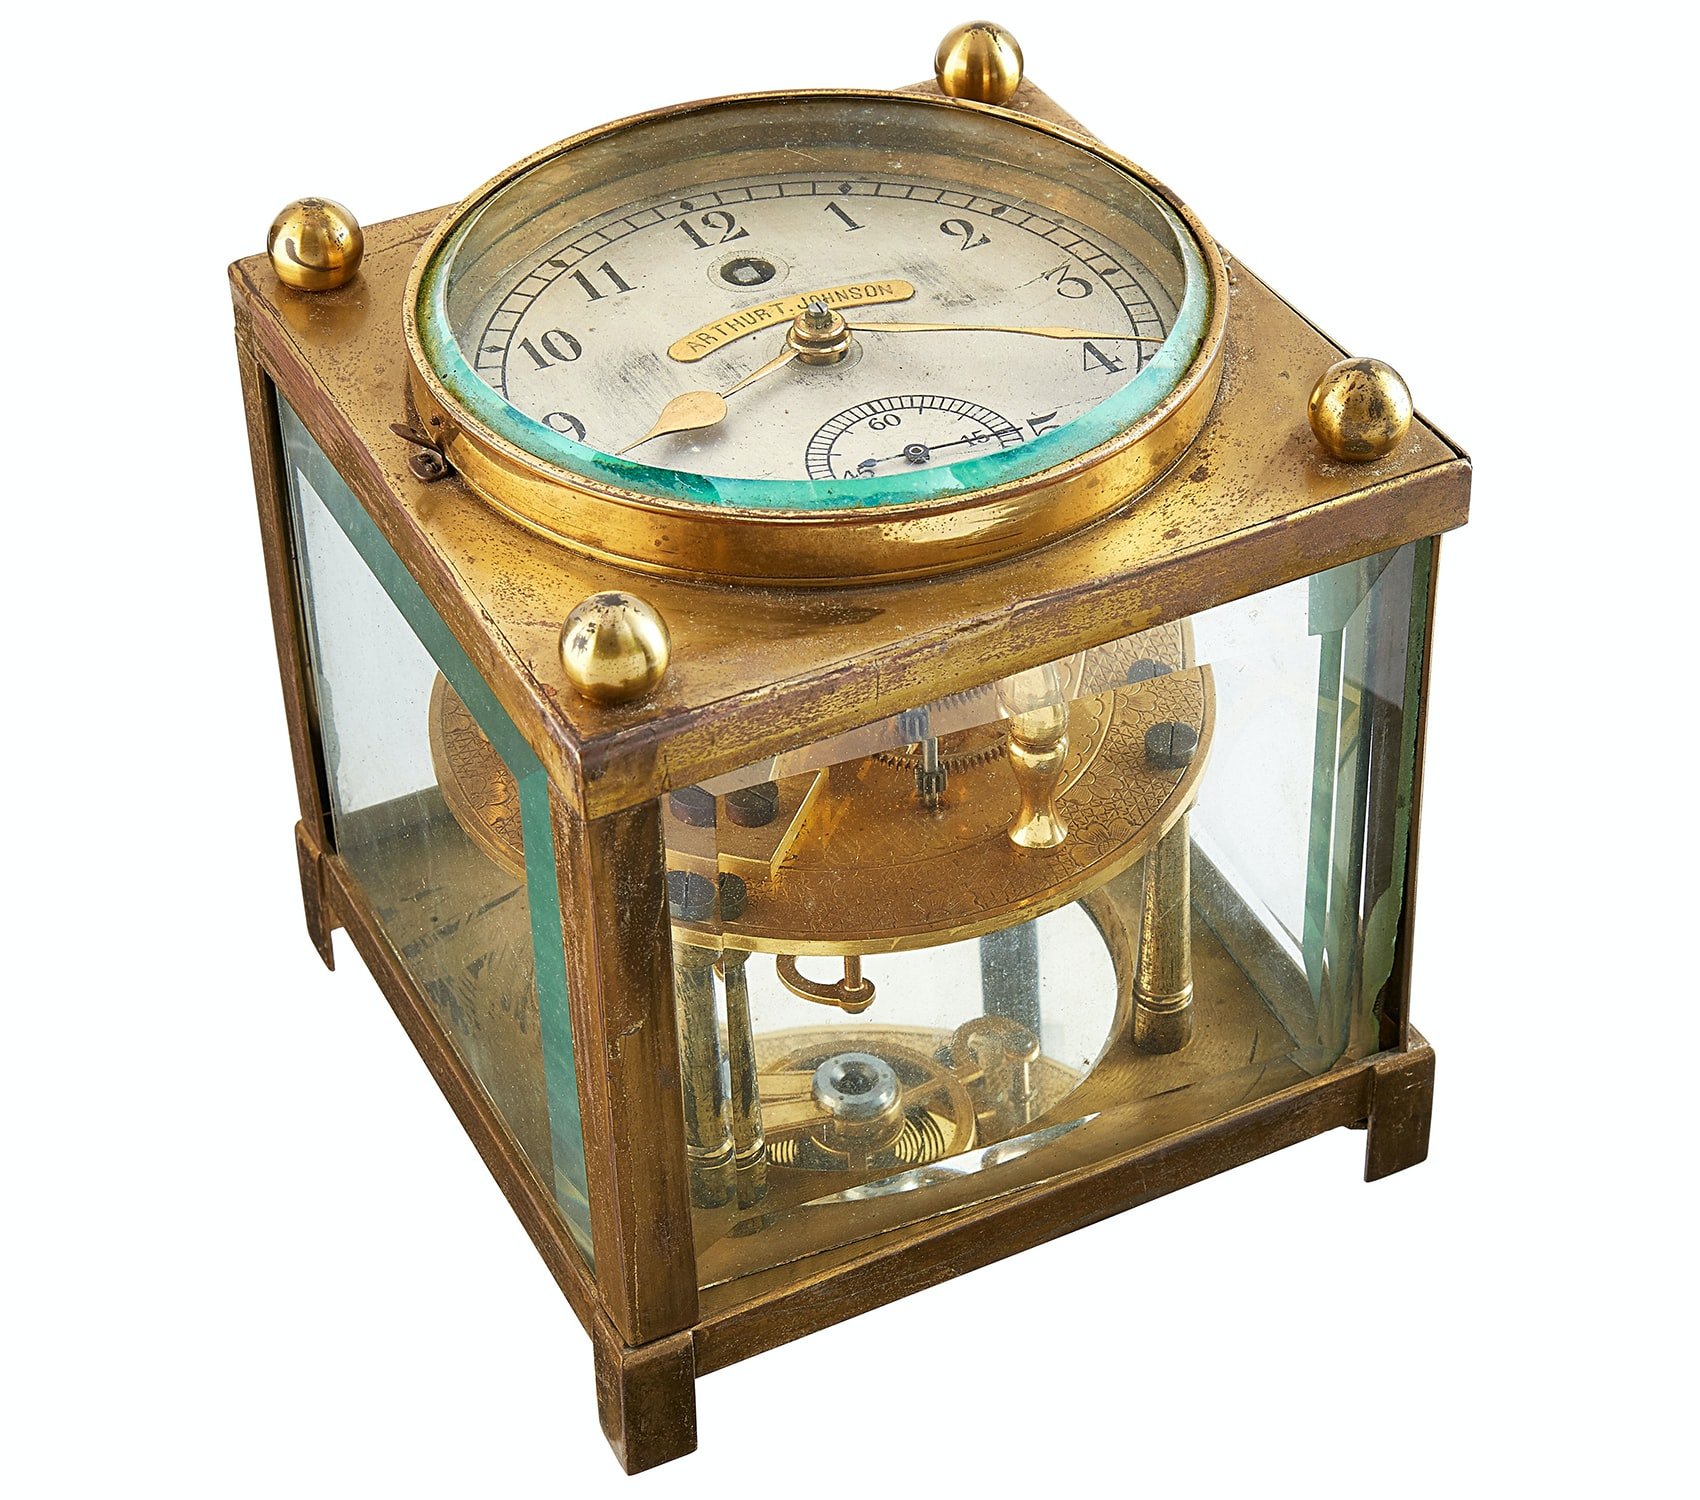 Found: A Captivating Collection Of Escapement Models At Heritage Auction's May 26th Sale Found: A Captivating Collection Of Escapement Models At Heritage Auction's May 26th Sale 222222